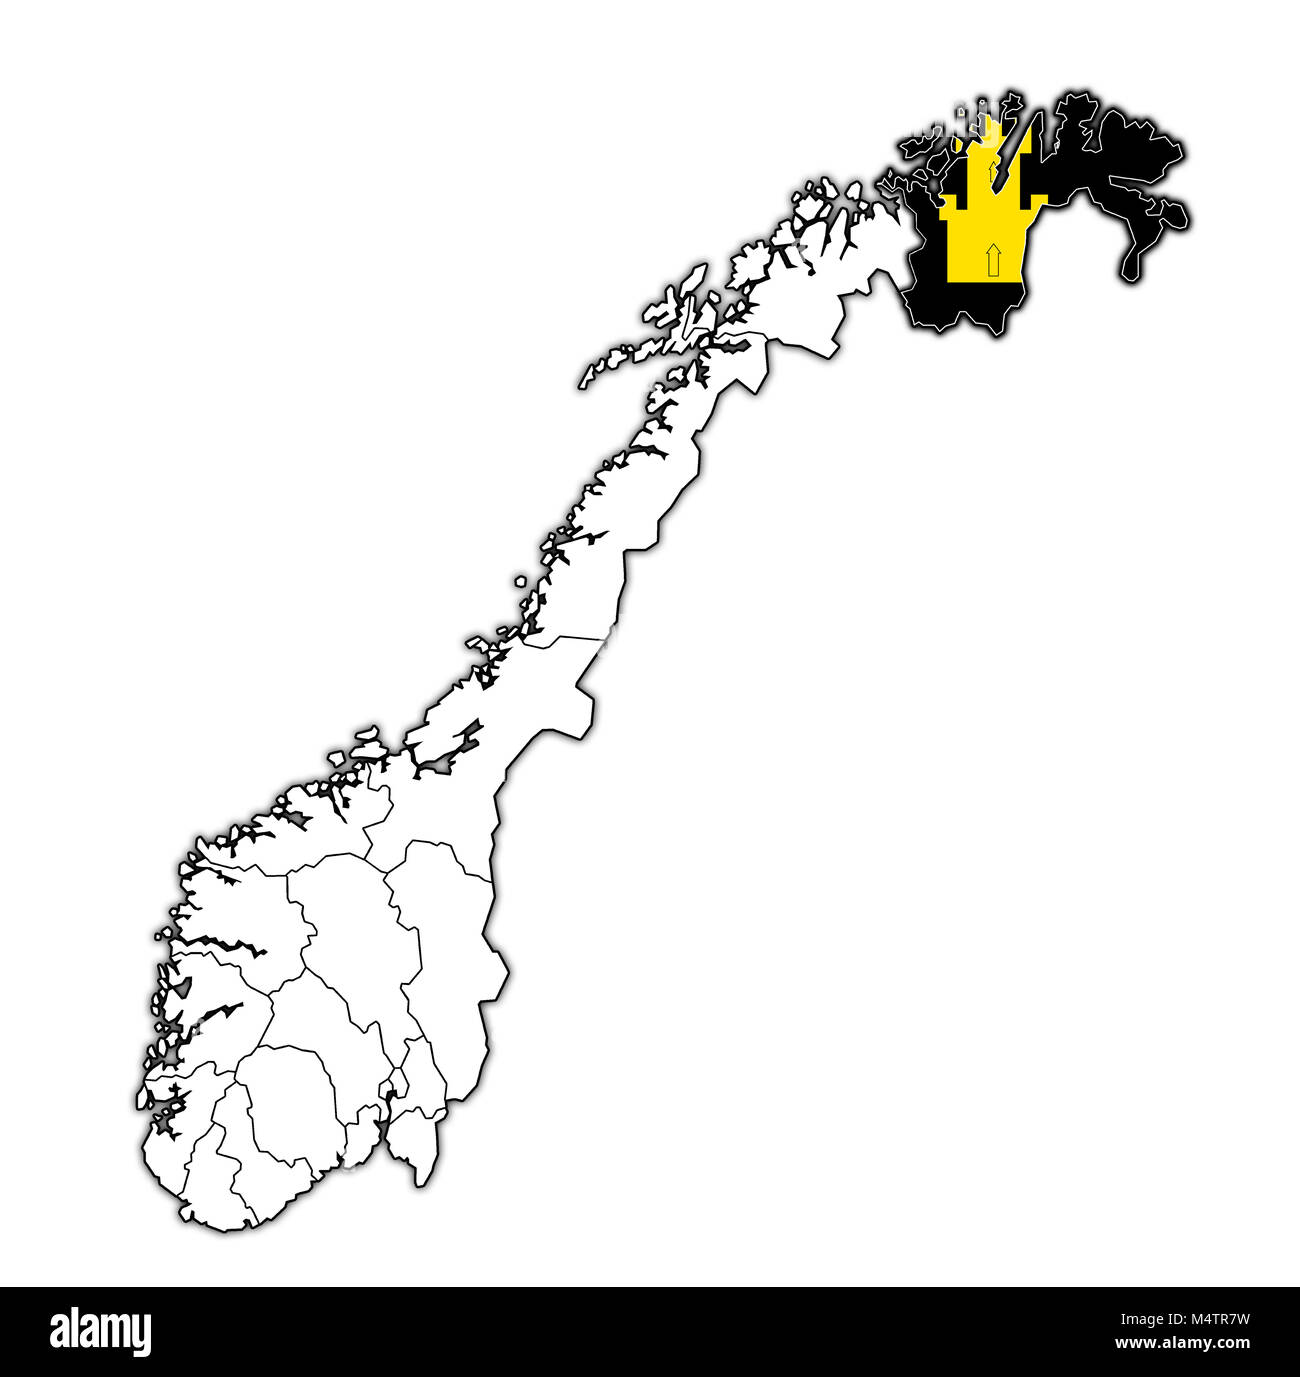 emblem of Finnmark county on map with administrative divisions and